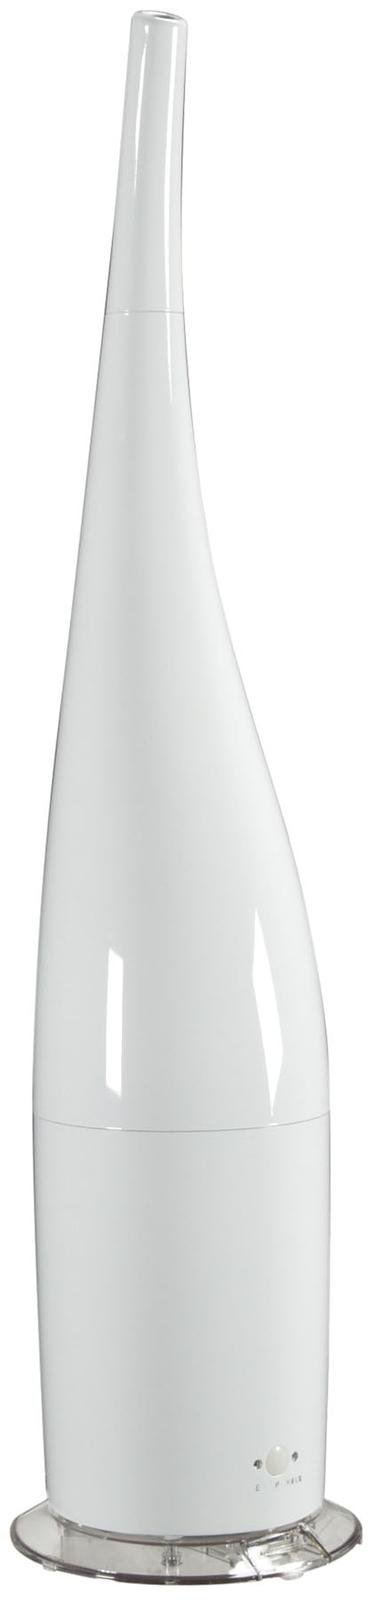 Objecto WCQ-012 H7 Humidifier with Aroma Therapy, White